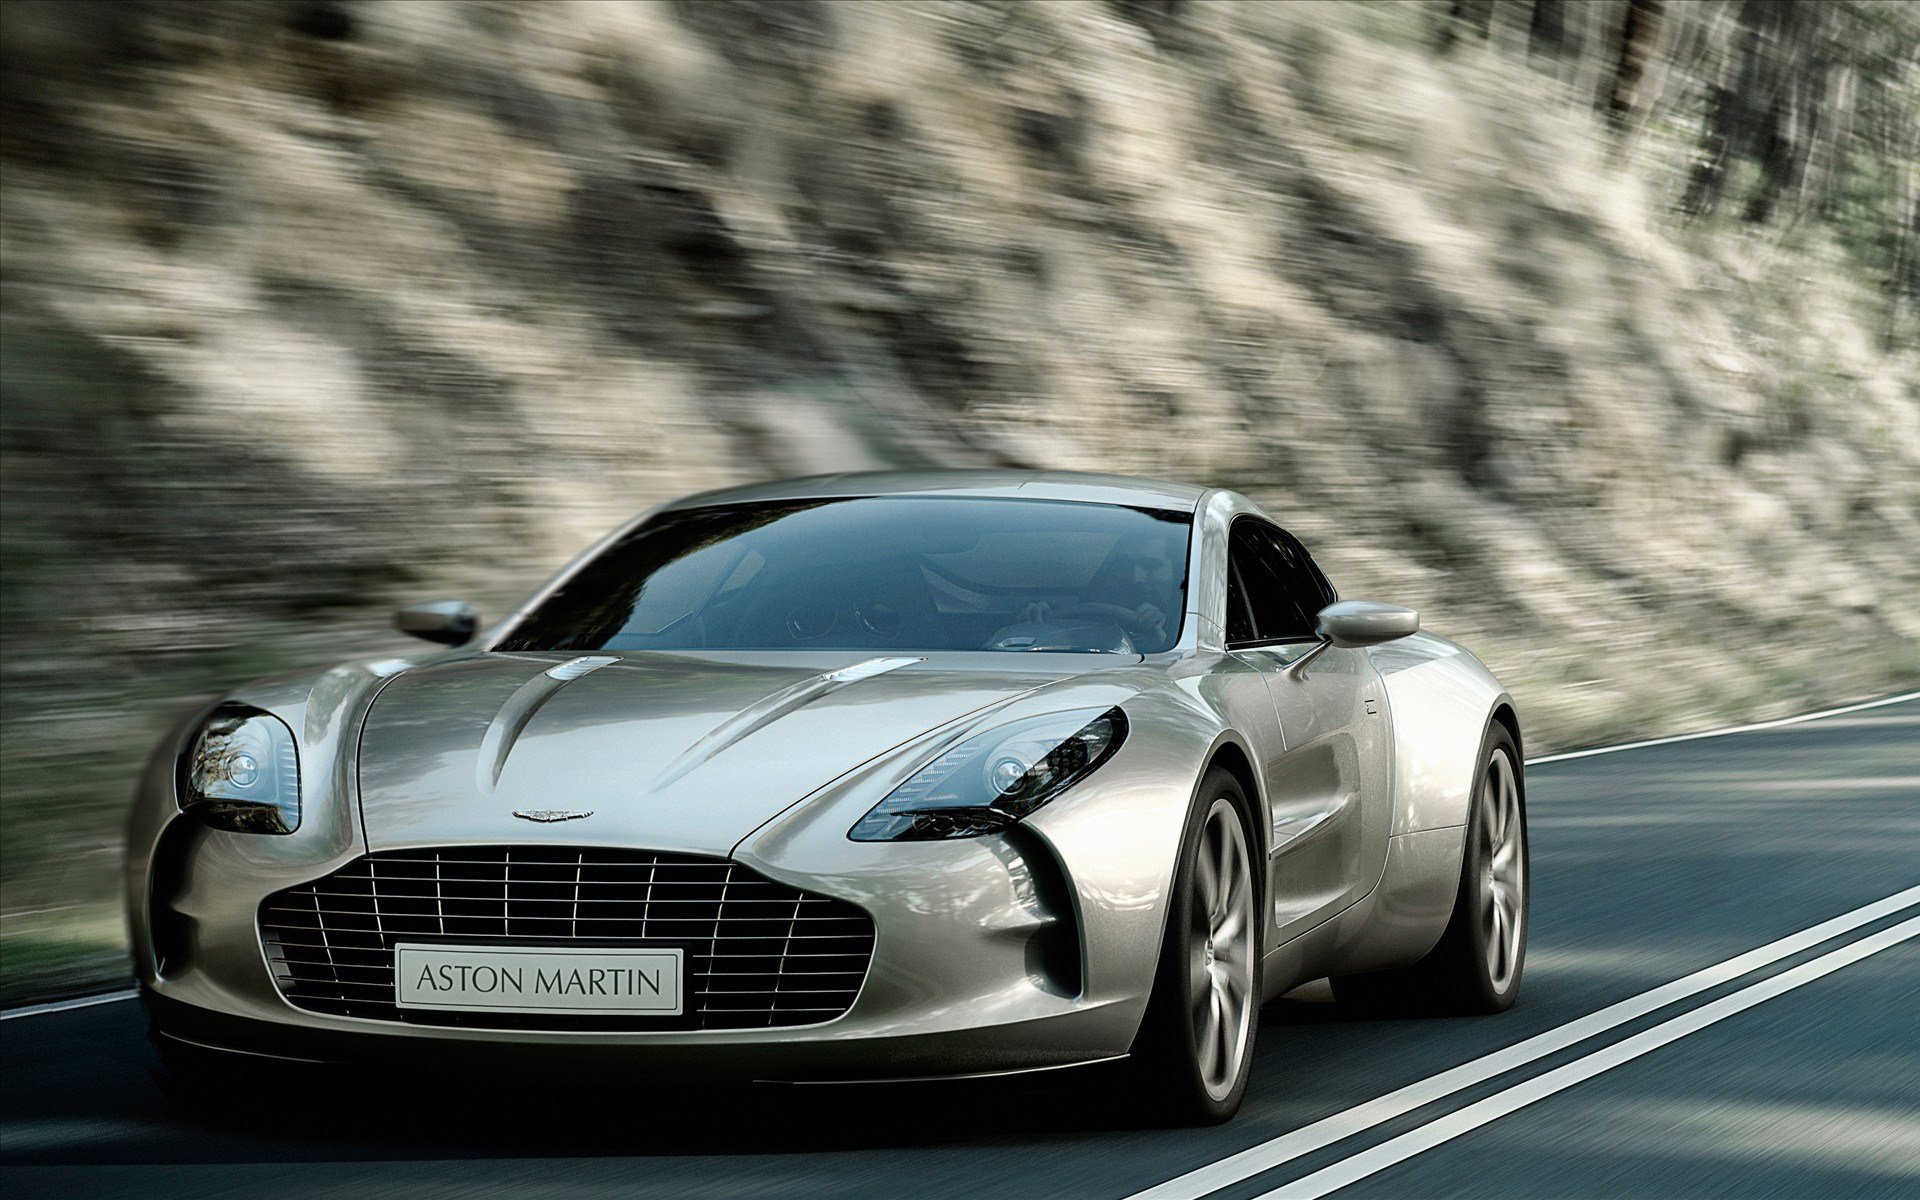 Latest Aston Martin On Road Car Wallpaper Hd Wallpapers Free Download